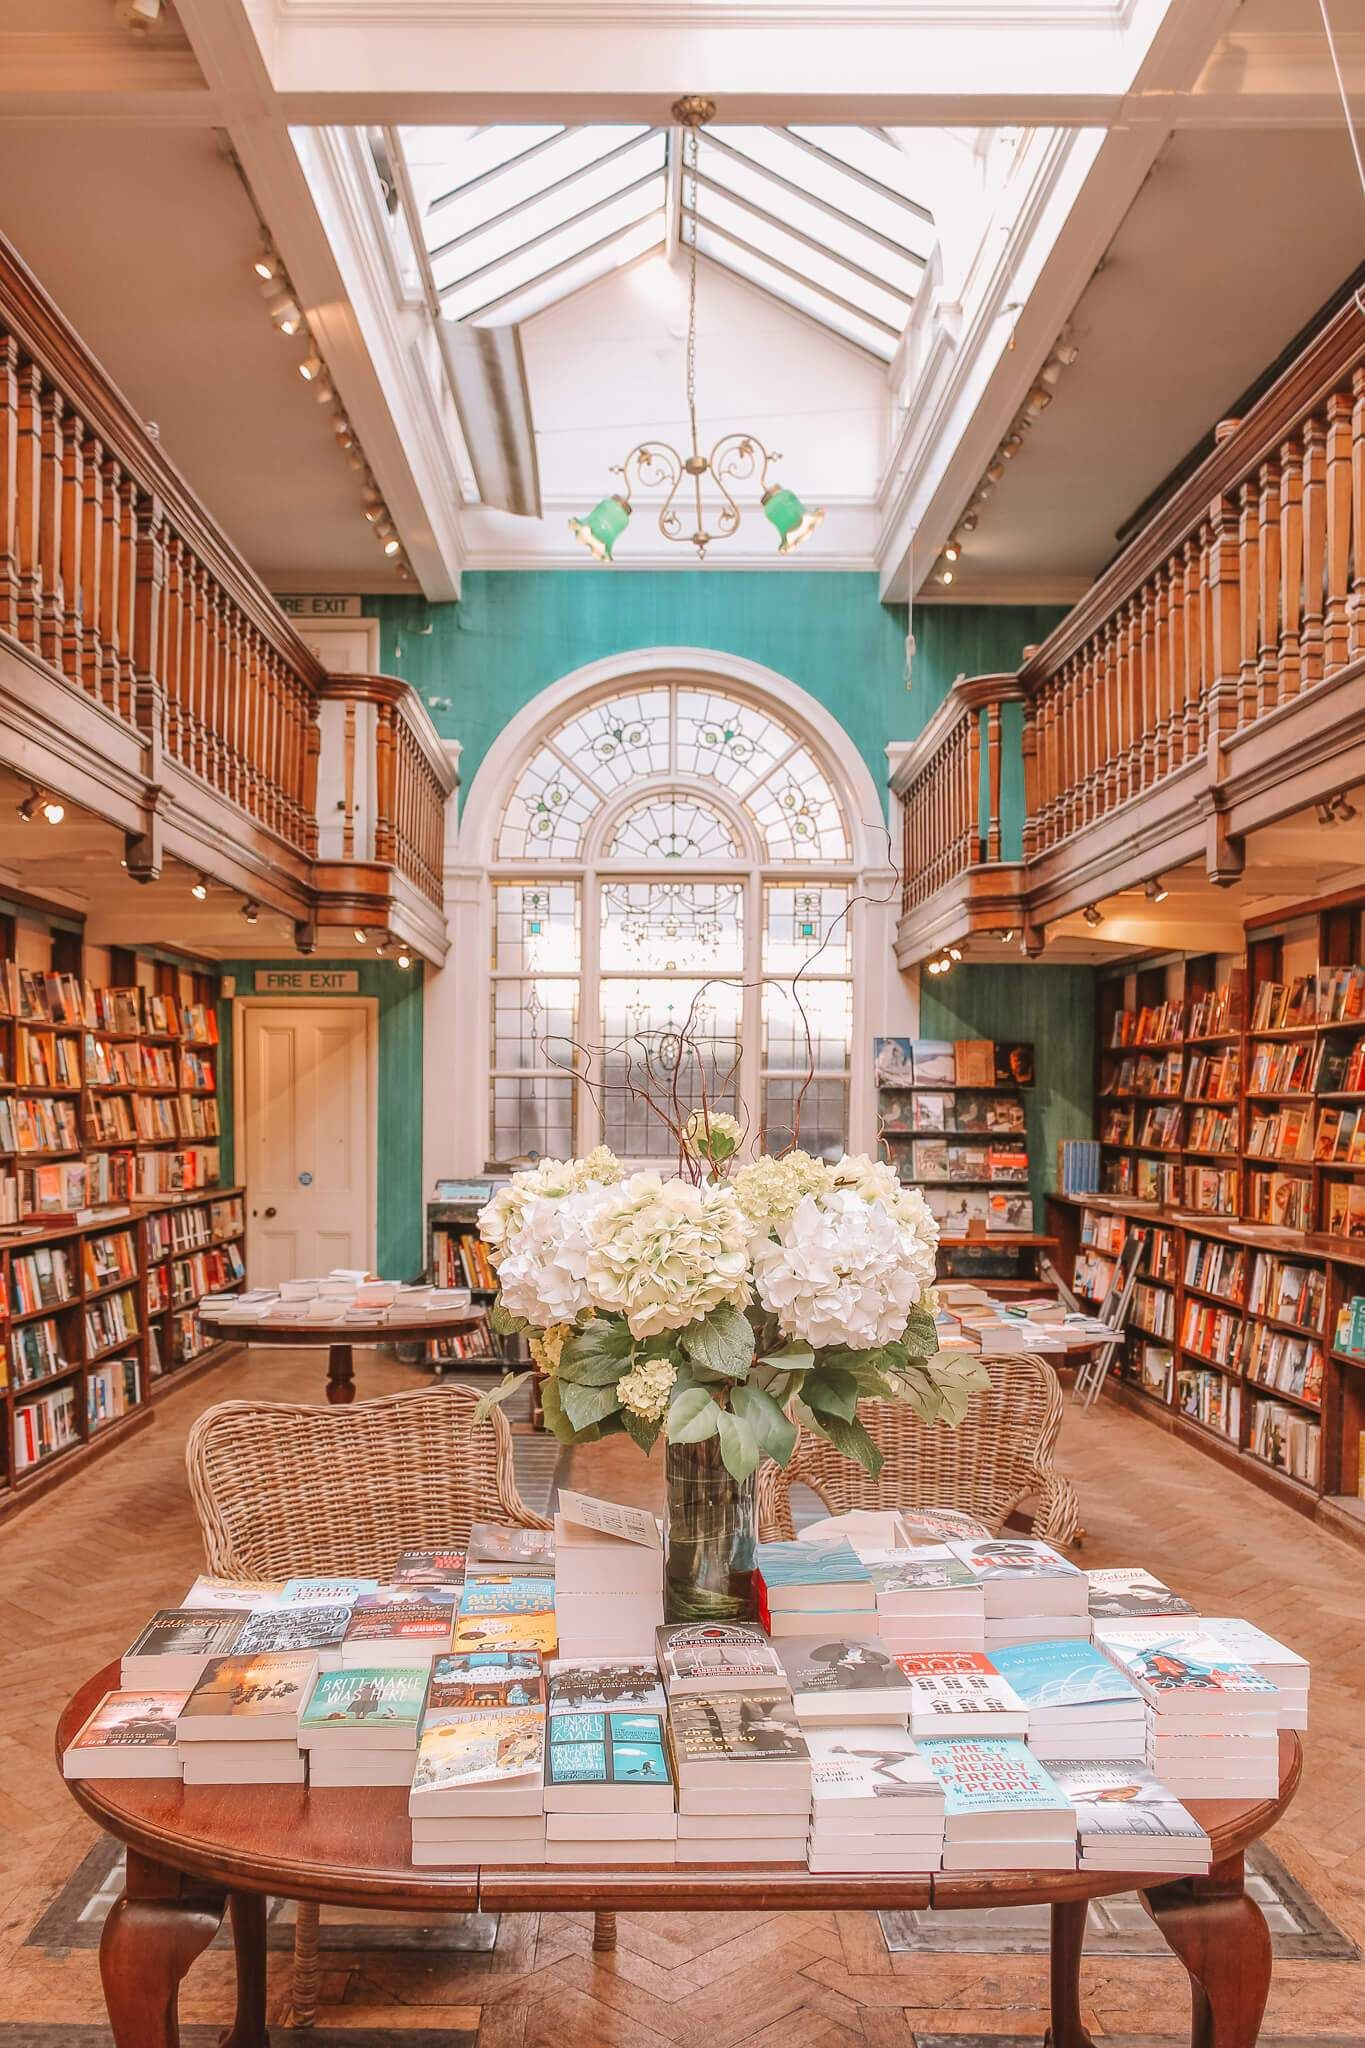 Daunt Books, Marylebone. These are 15 of the most beautiful bookshops in London. London is home to some of the most beautiful bookshops in the world. These are all independent bookshops in London and they stock a variety of old and new, fiction and non-fiction etc. Perfect for bookworms in London! #whatshotblog #bookshopporn #bookstagram #bookshops #travelLondon